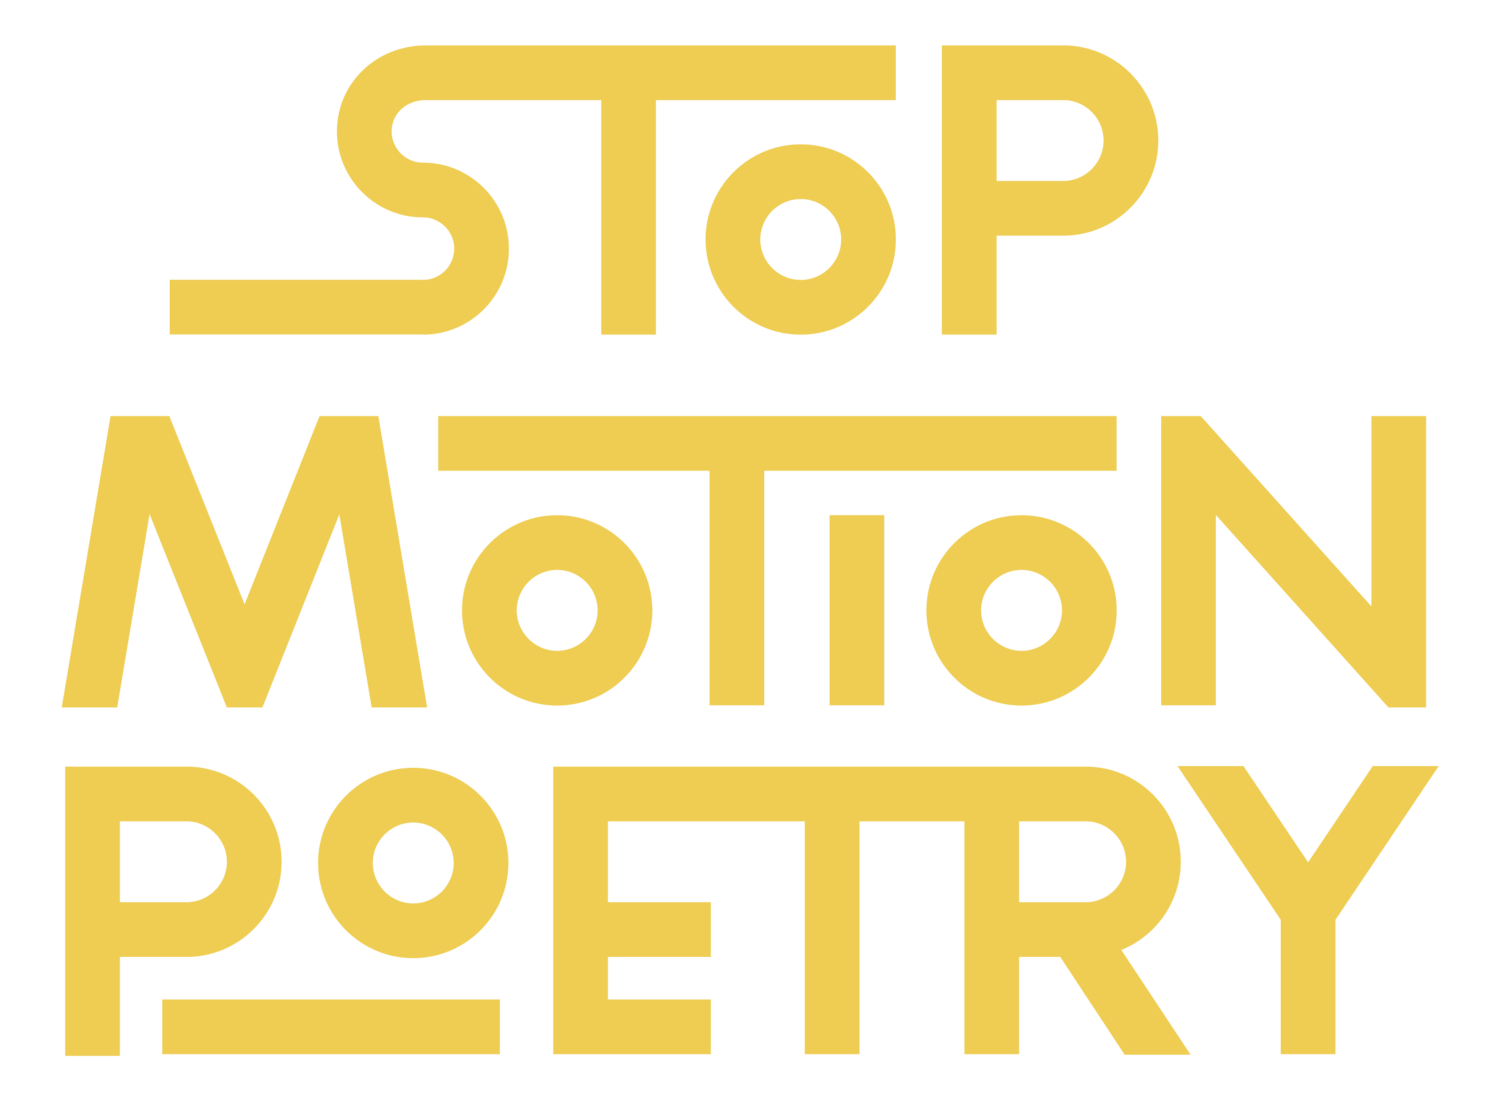 Stop Motion Poetry